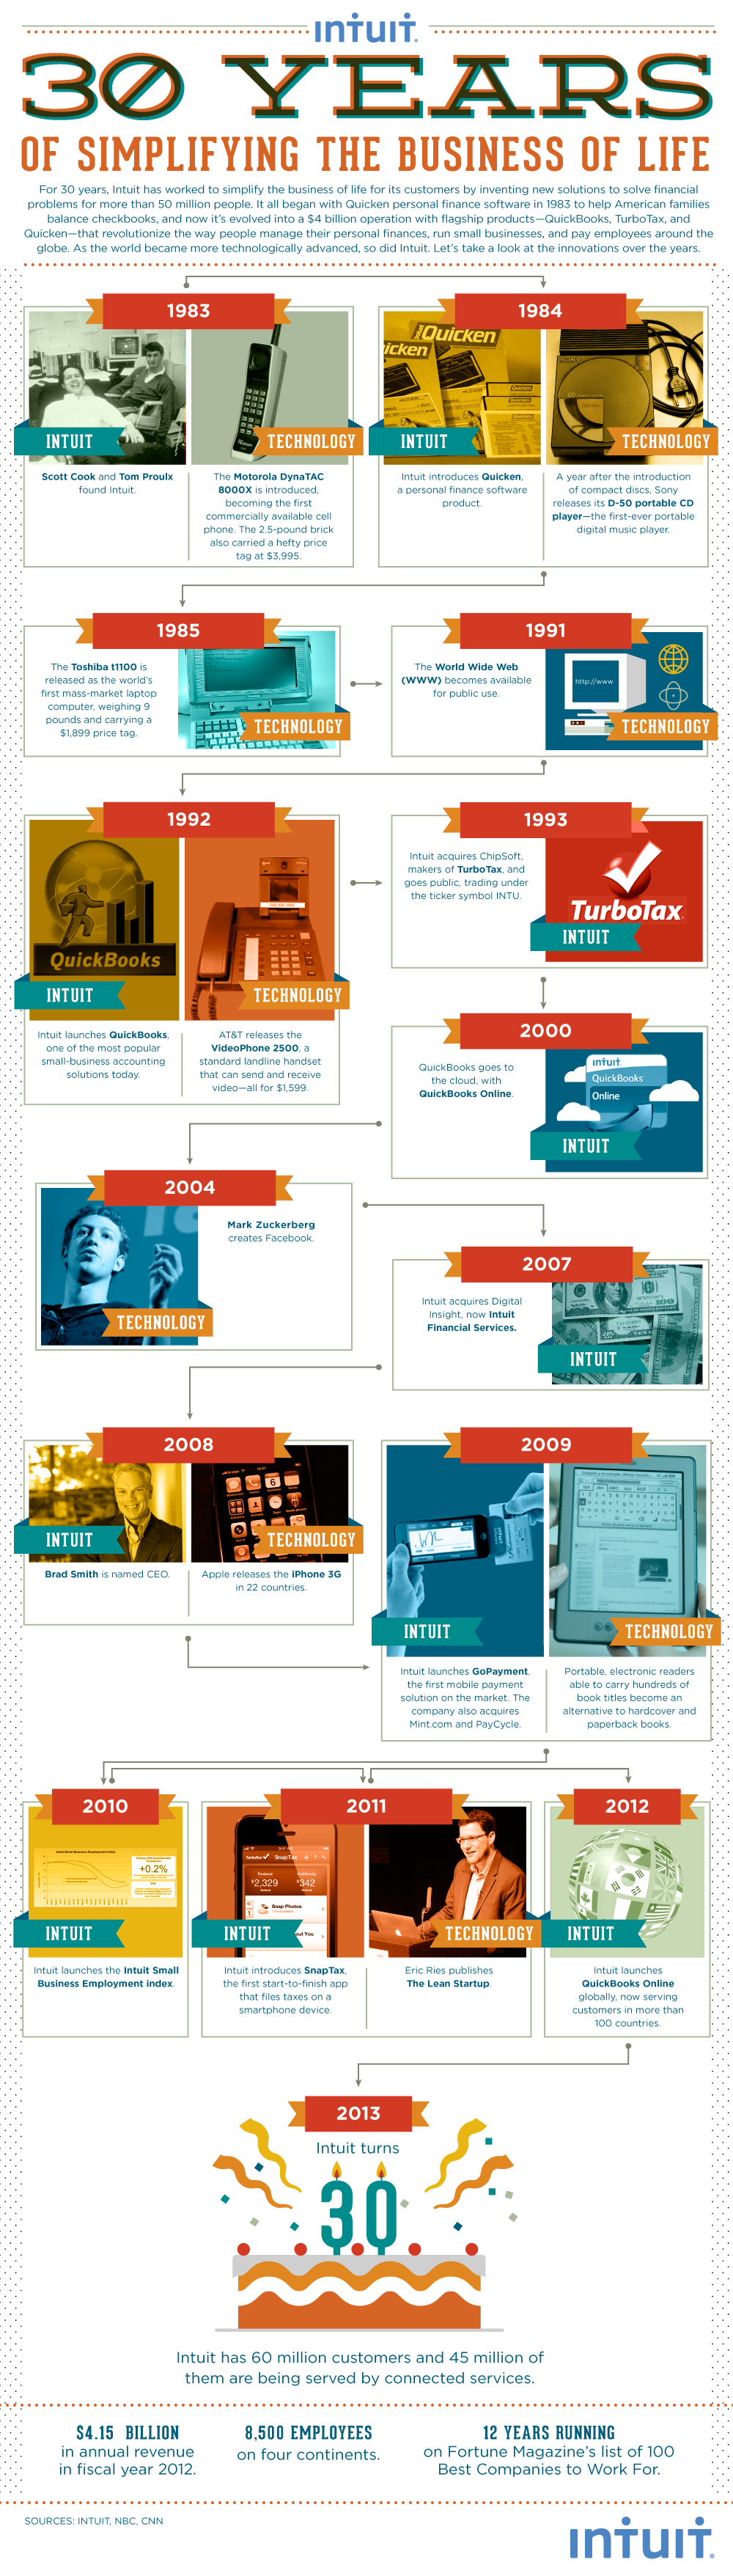 Infographic: Intuit: 30 Years of Simplifying the Business of Life